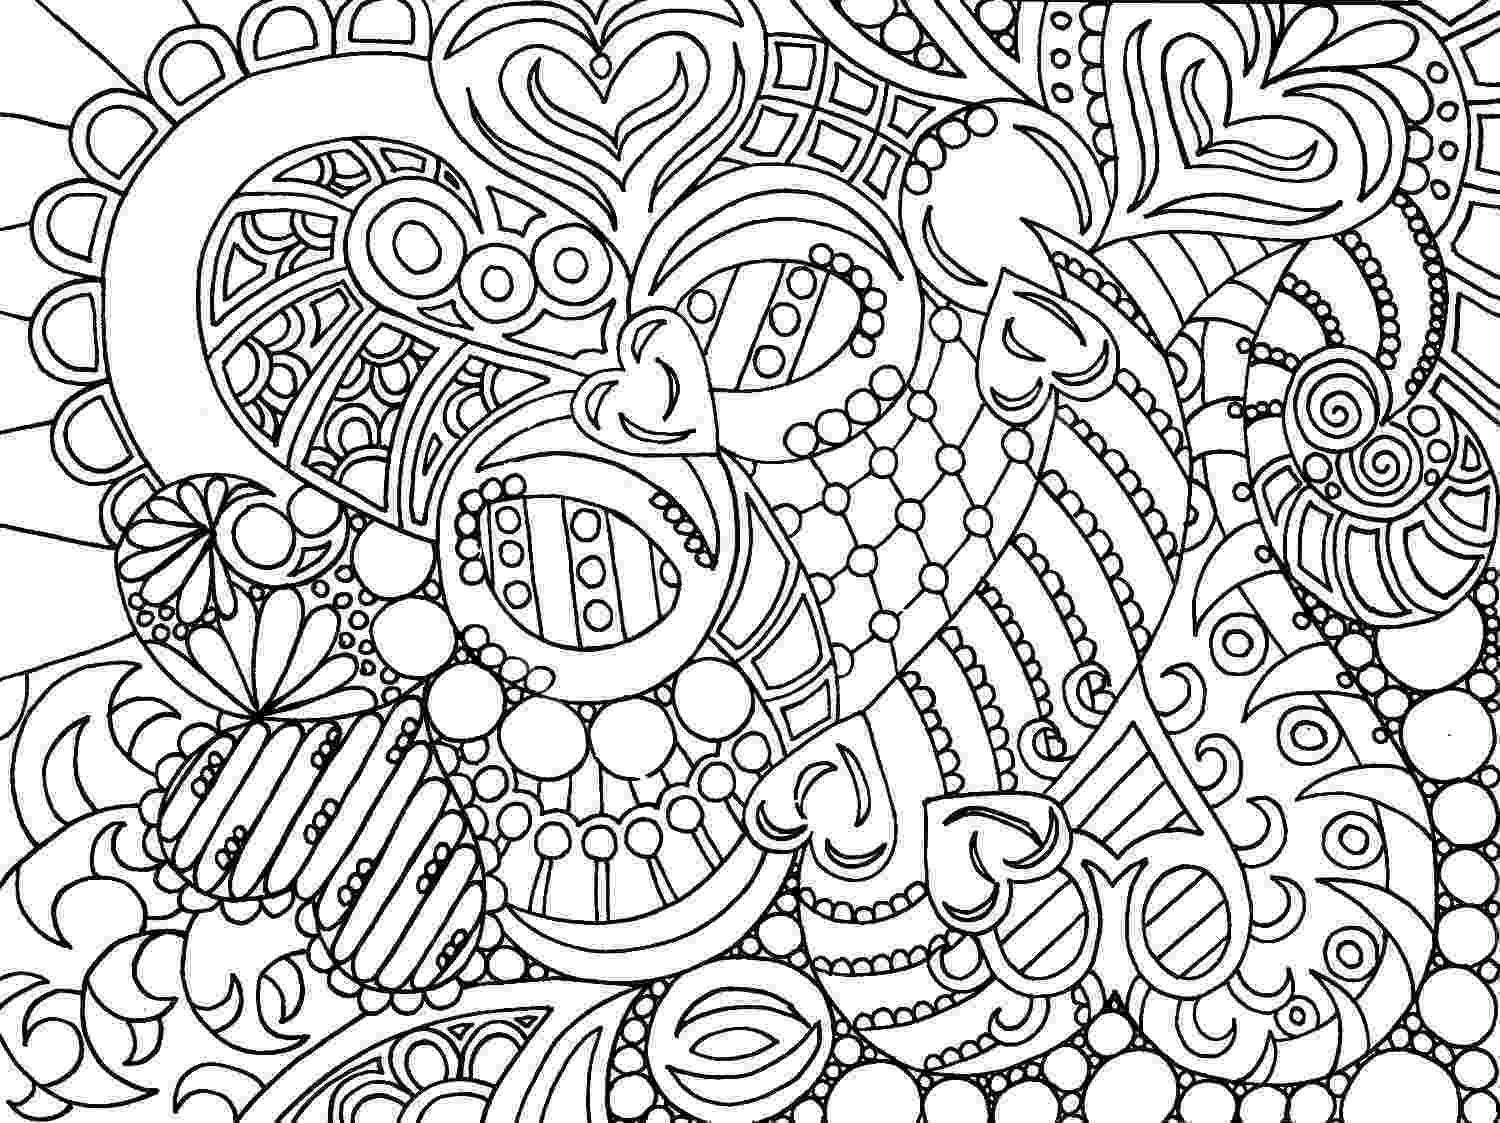 free abstract coloring pages ausmalbilder für kinder malvorlagen und malbuch abstract free pages coloring